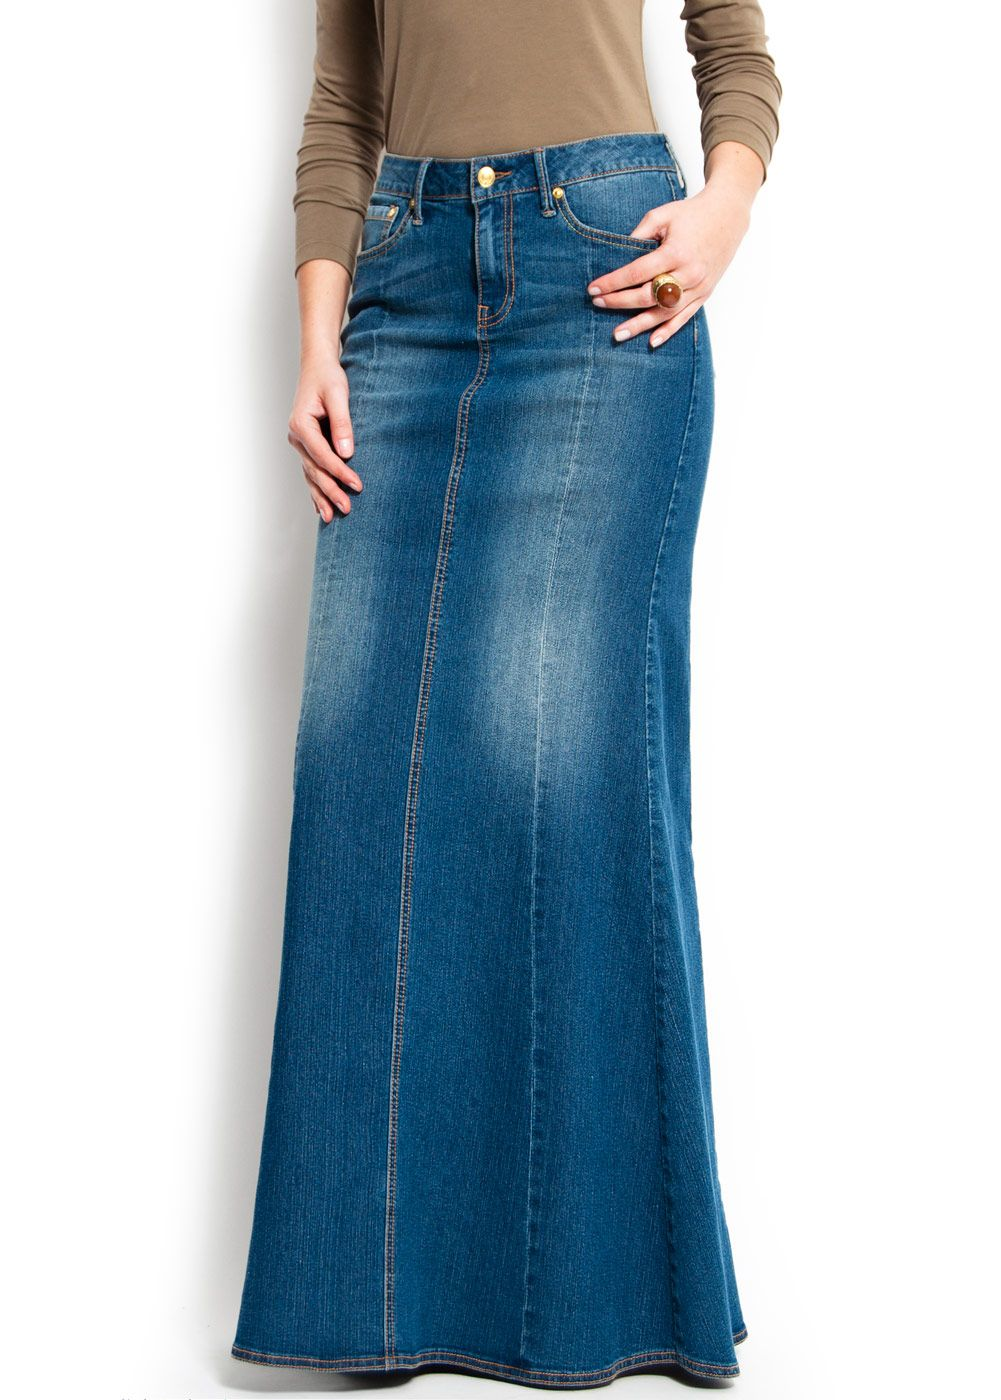 love this long denim skirt! I really feel its time these made a